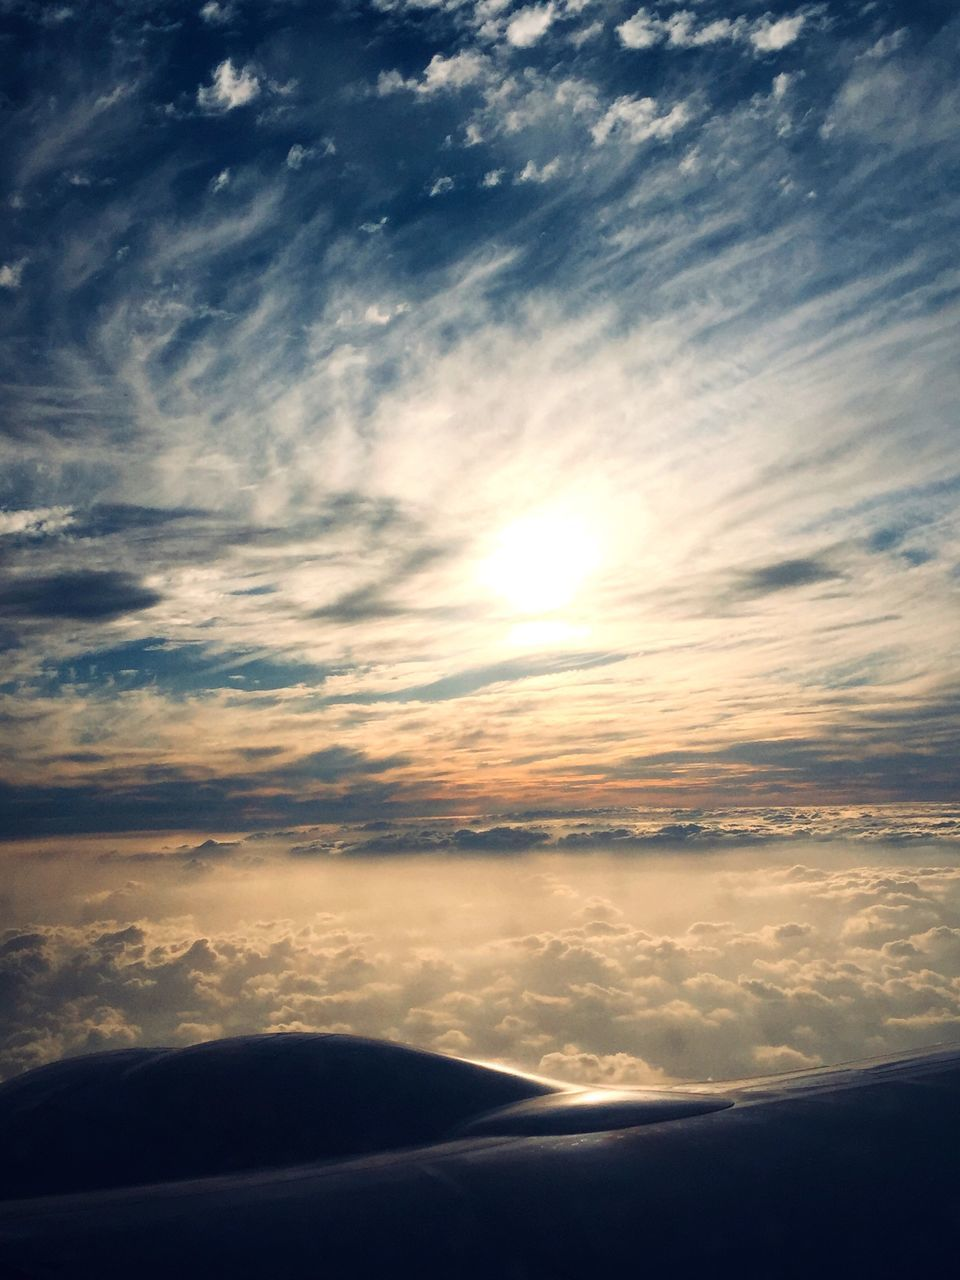 cloud - sky, sky, beauty in nature, scenics - nature, sunset, mode of transportation, no people, transportation, air vehicle, nature, airplane, flying, sun, cloudscape, sunlight, travel, outdoors, tranquility, tranquil scene, mid-air, bright